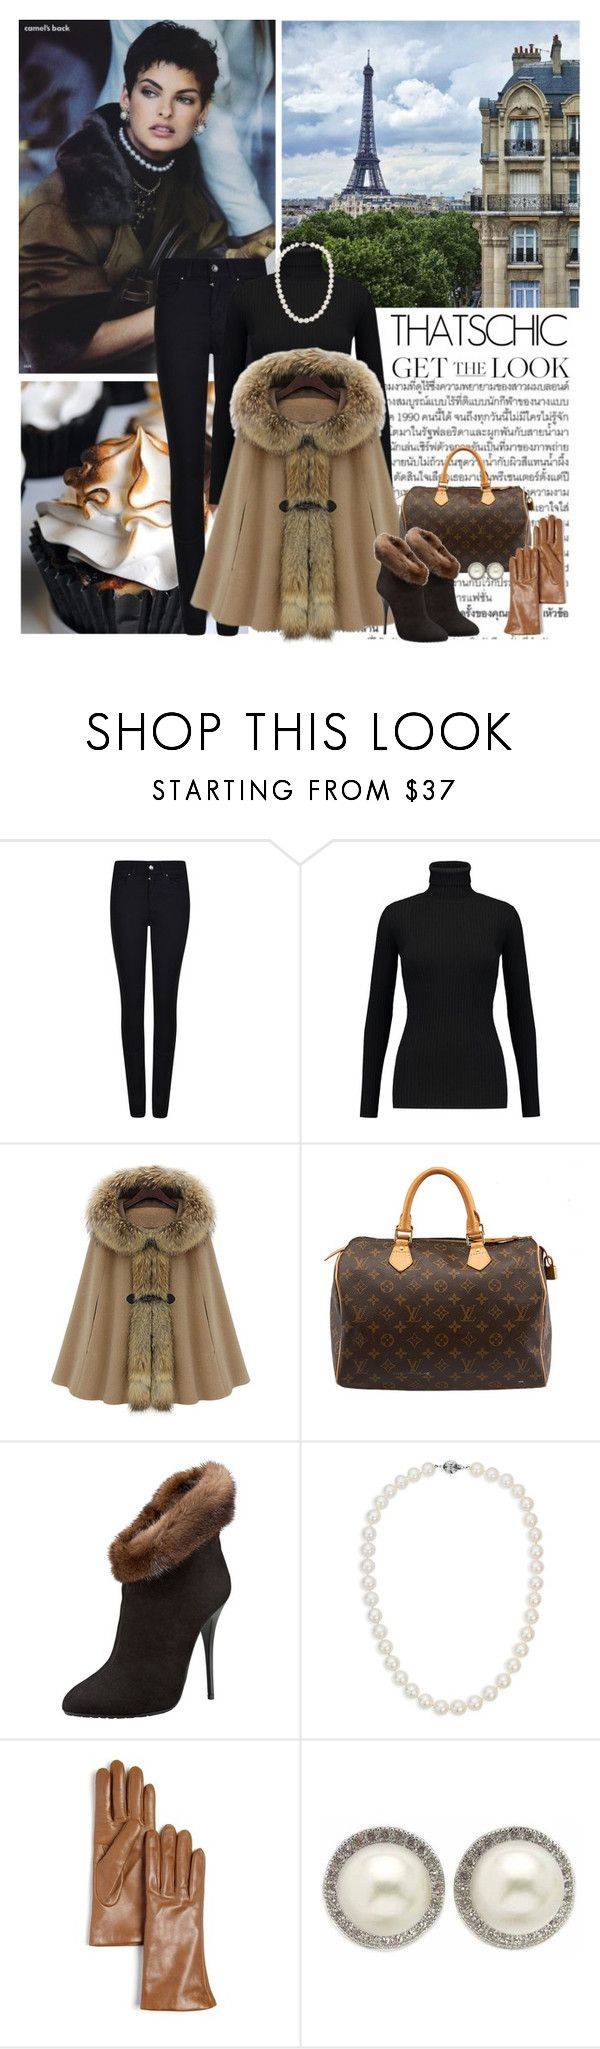 """Get the Look: Winter Style"" by dezaval ❤ liked on Polyvore featuring Dollhouse, Lonely Planet, Murphy, Armani Jeans, Autumn Cashmere, Louis Vuitton, Giuseppe Zanotti, Blue Nile, Bloomingdale's and Kabella Jewelry"